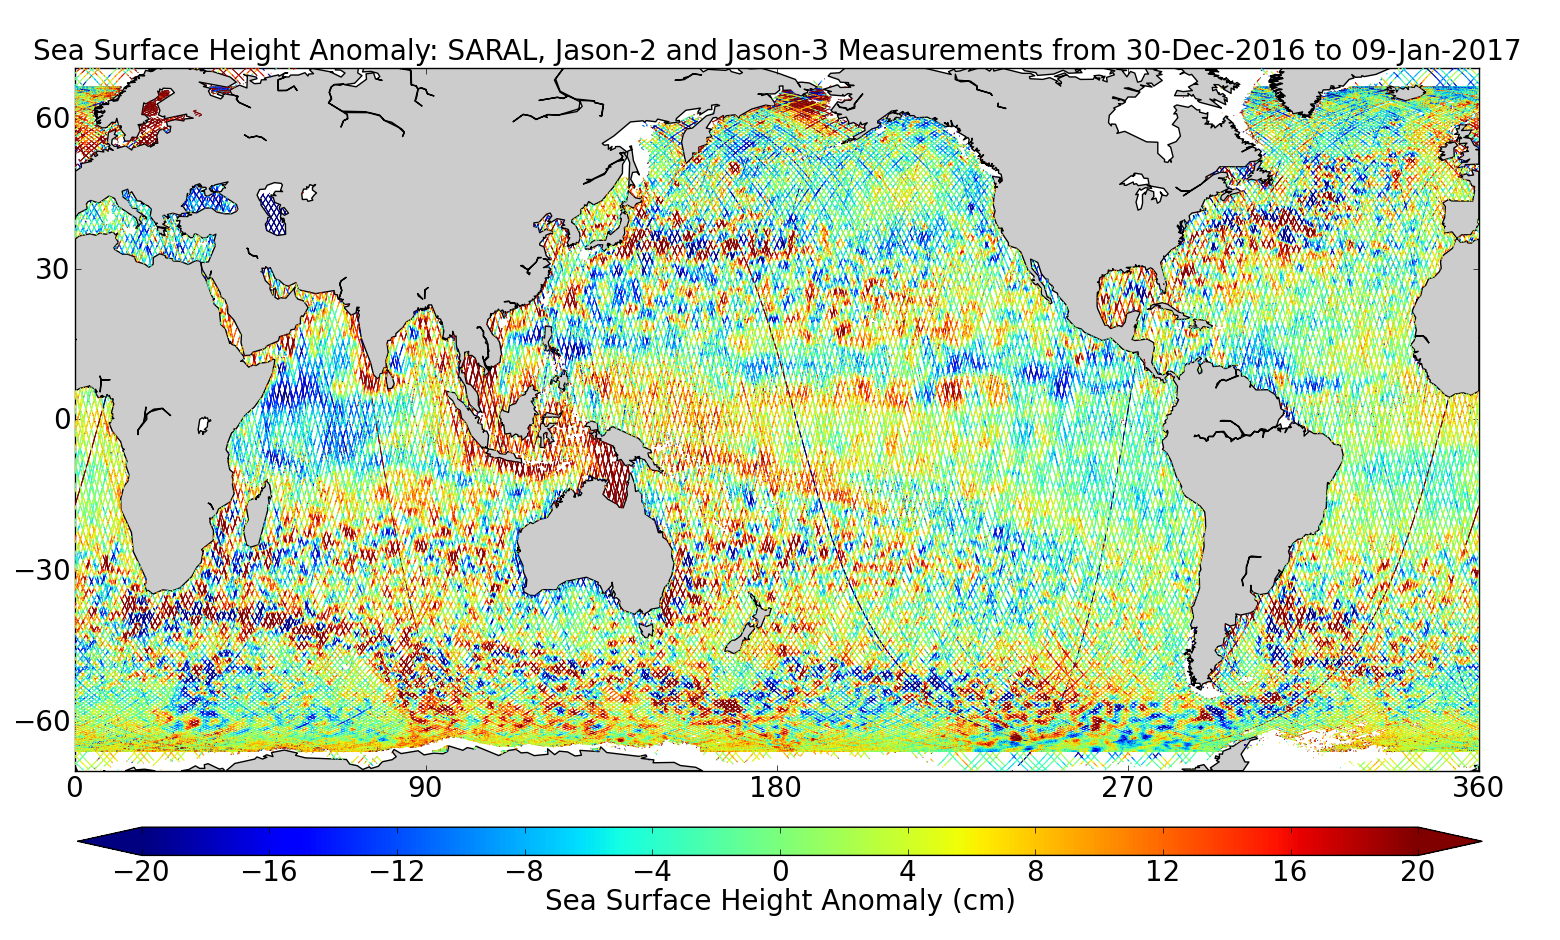 Sea Surface Height Anomaly: SARAL, Jason-2 and Jason-3 Measurements from 30-Dec-2016 to 09-Jan-2017